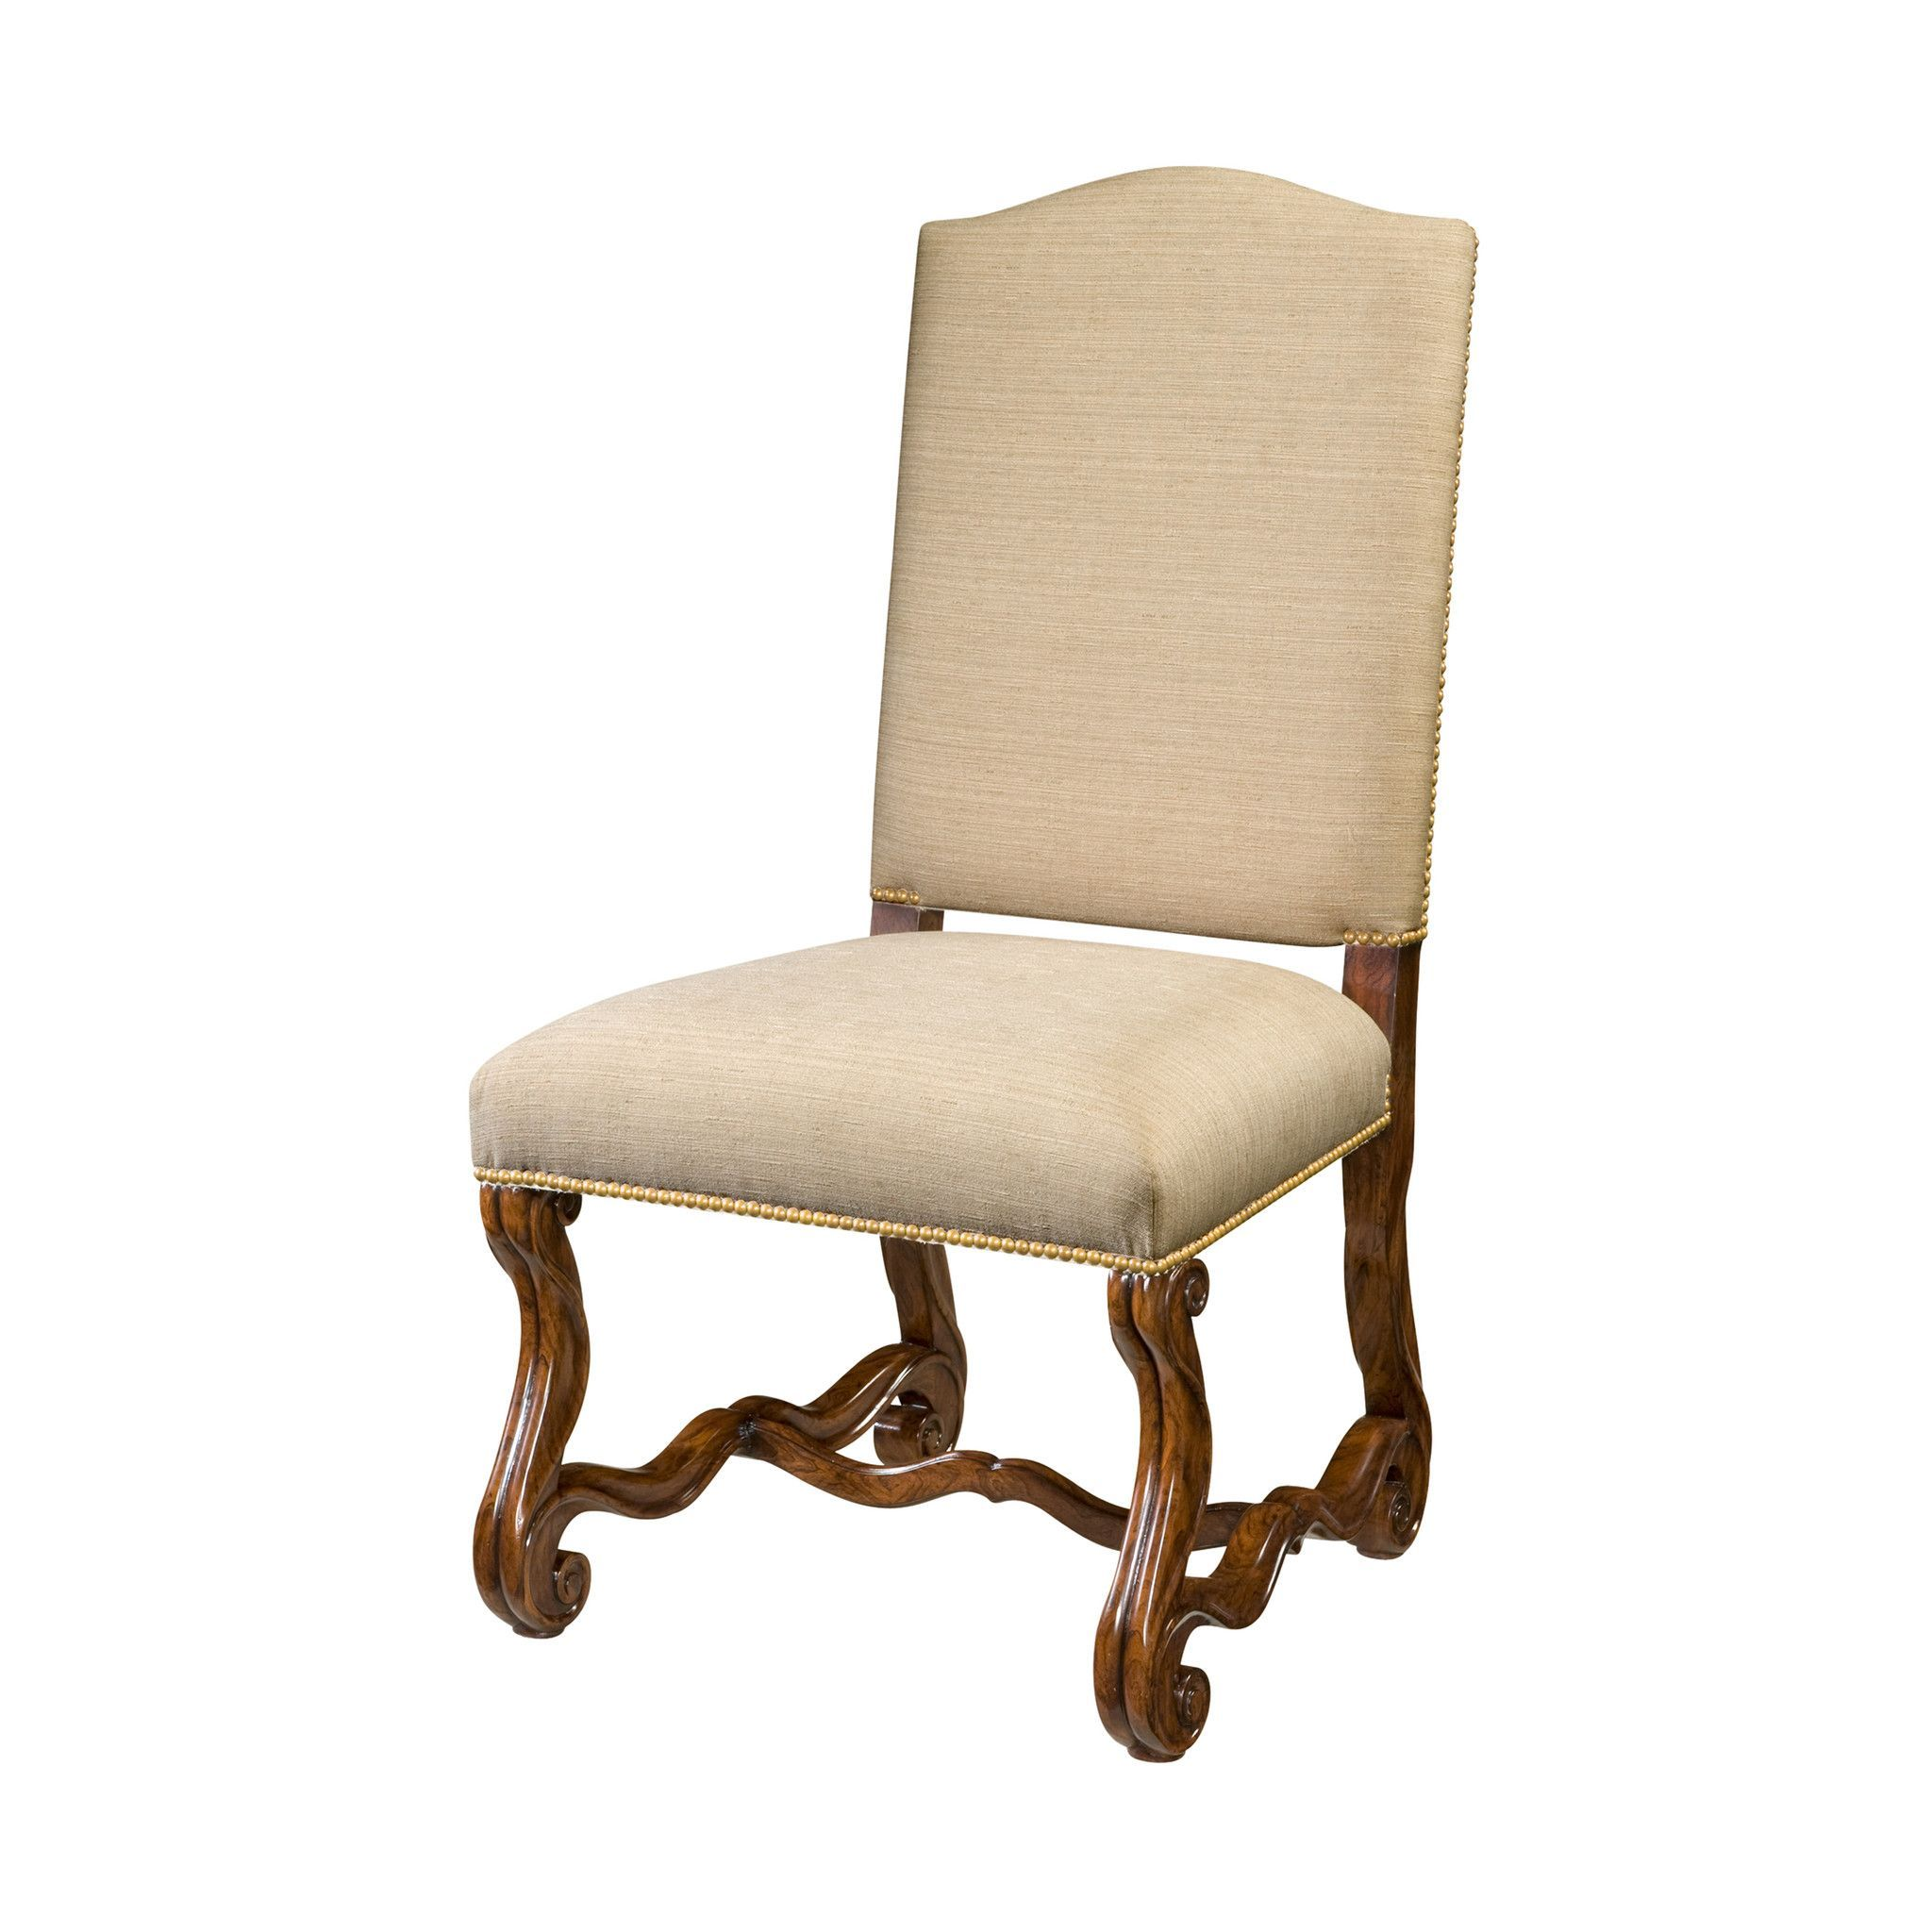 French Provincial Louis XIV Dining Chair